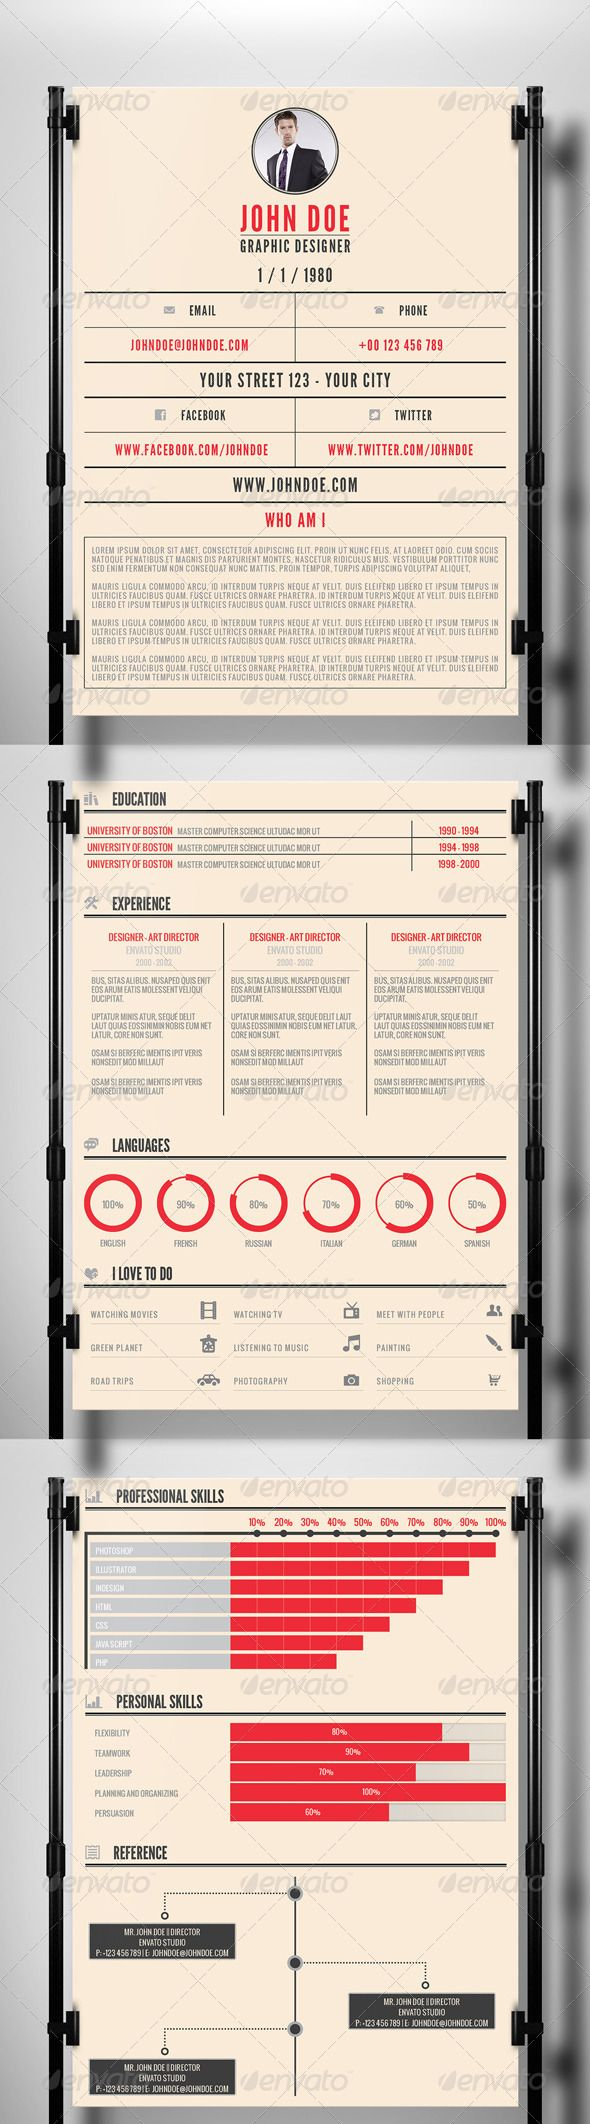 20 best images about creative resumes on pinterest